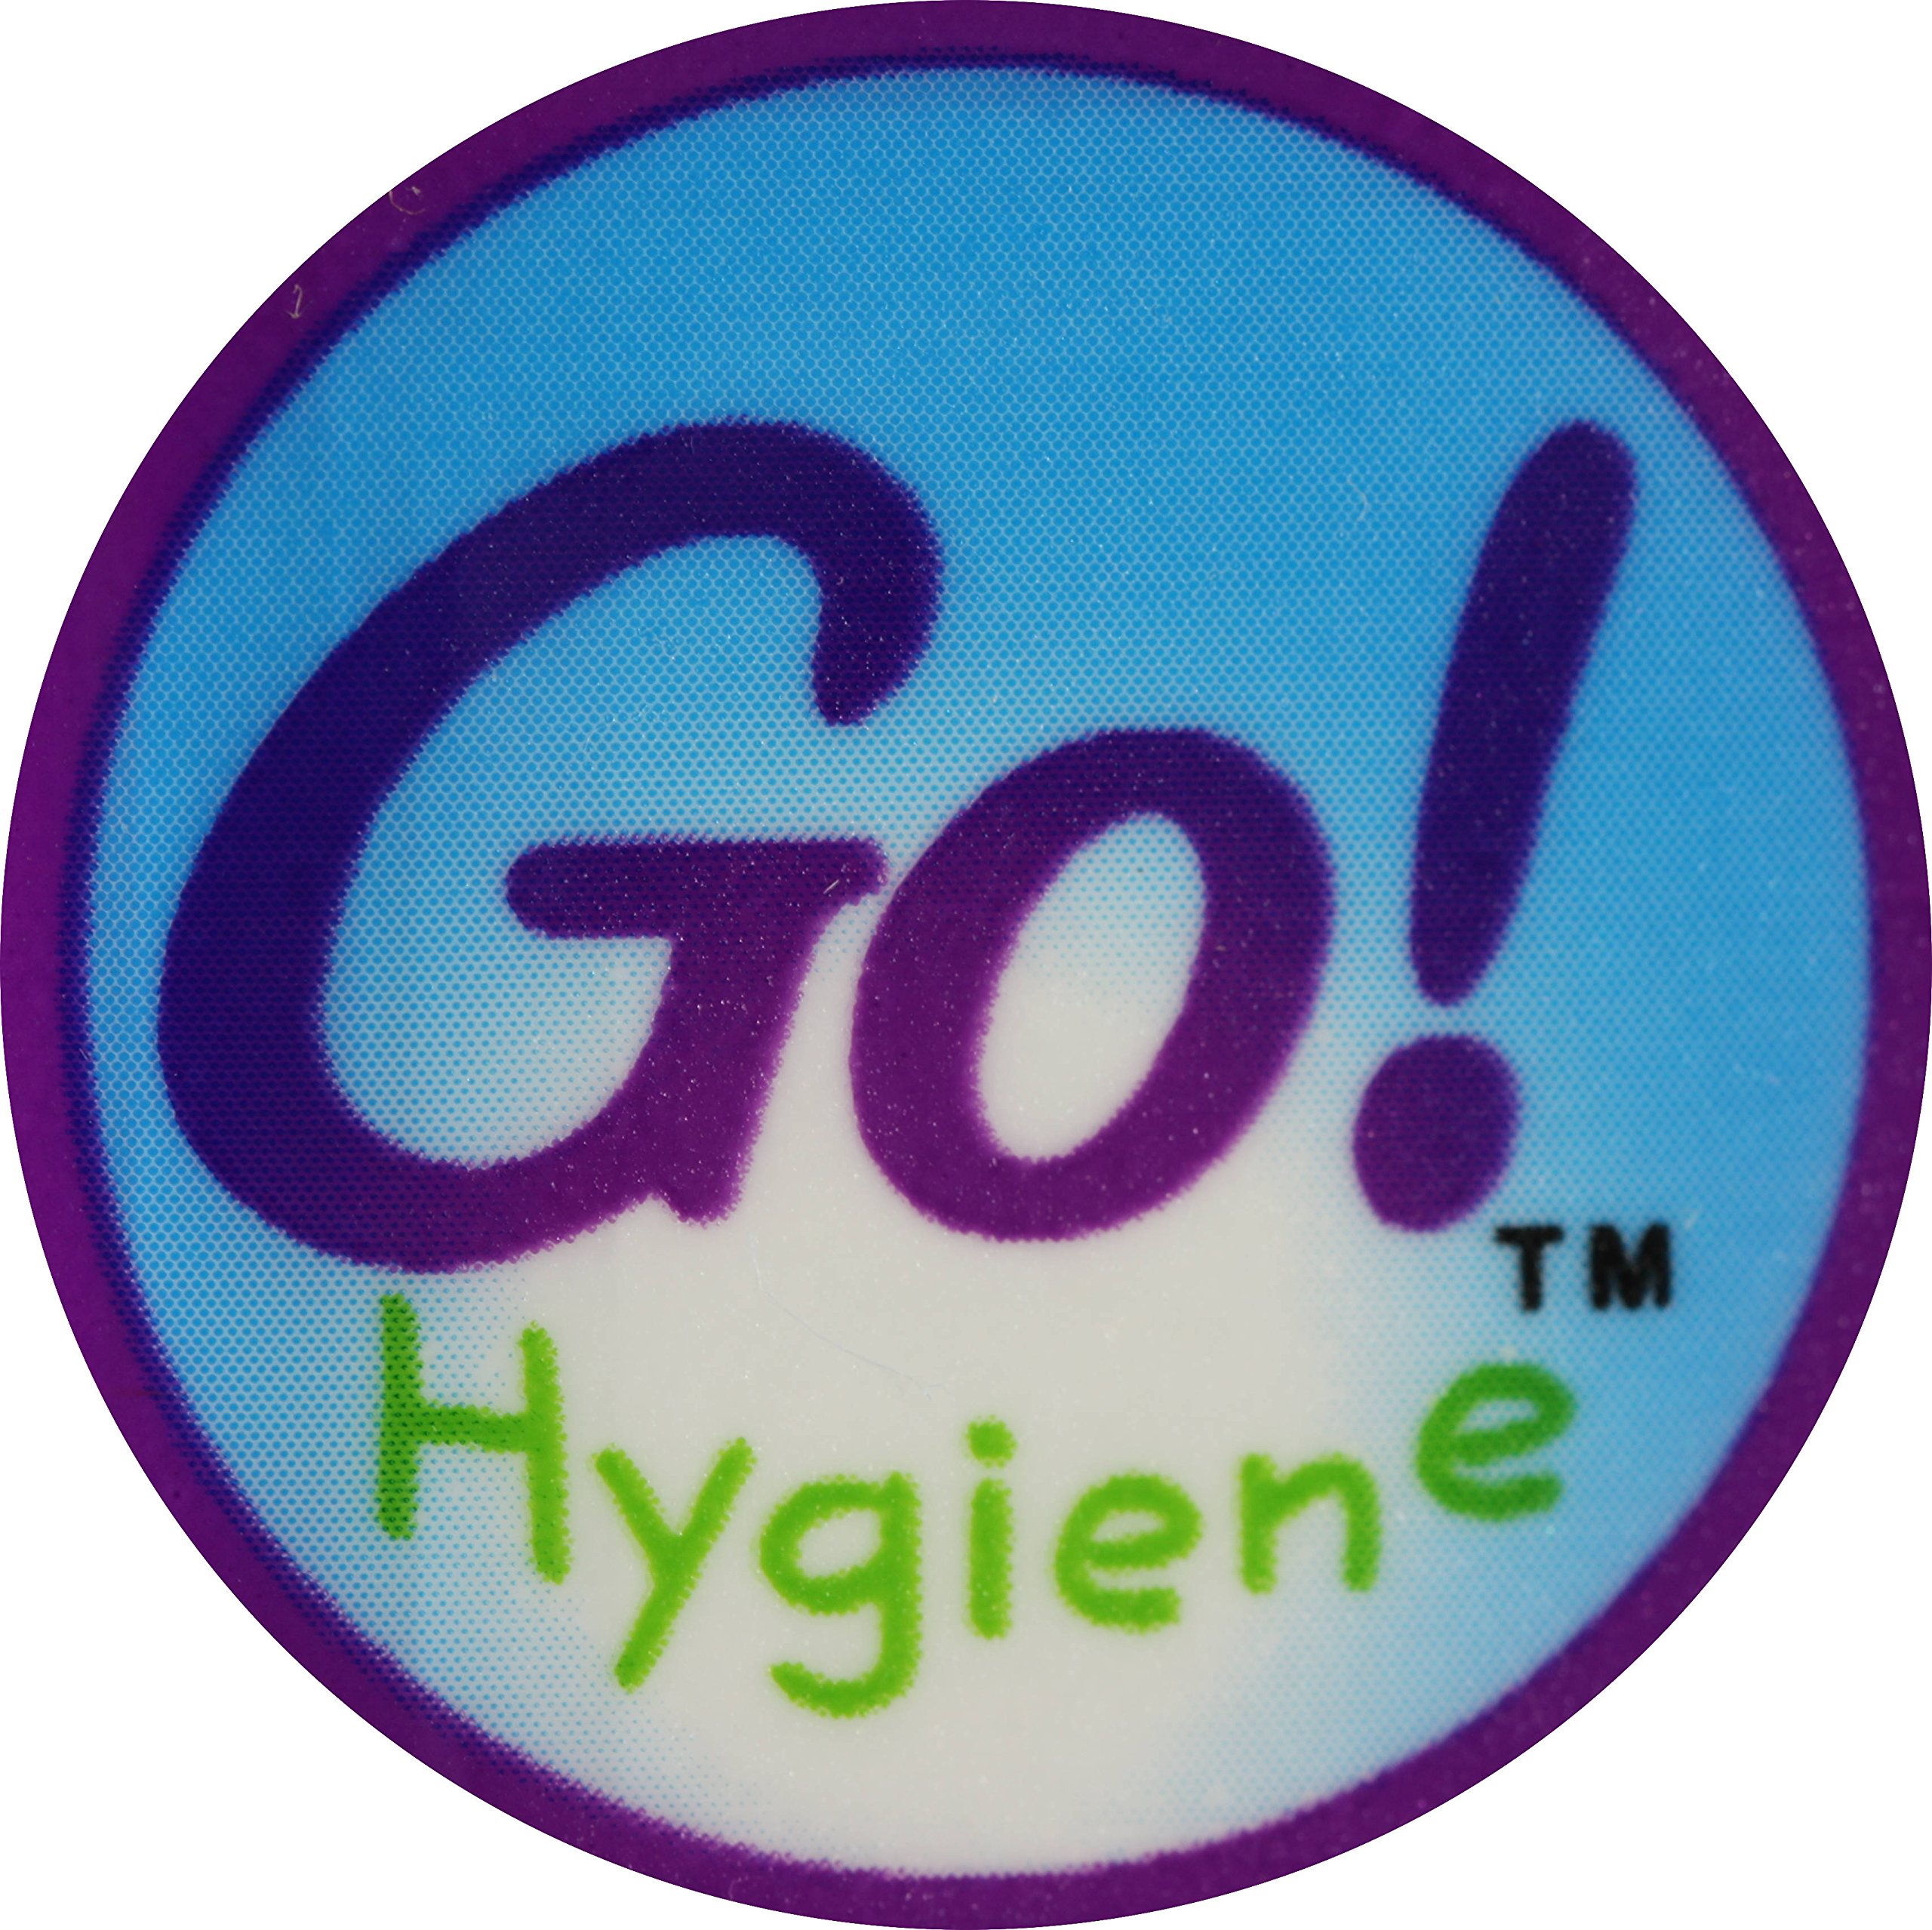 GoHygiene: Travel Pack of 4 PACKS (40-COUNT) + 1 FREE PACK (10-COUNT) ! - Disposable Toilet Seat Covers - NEW!